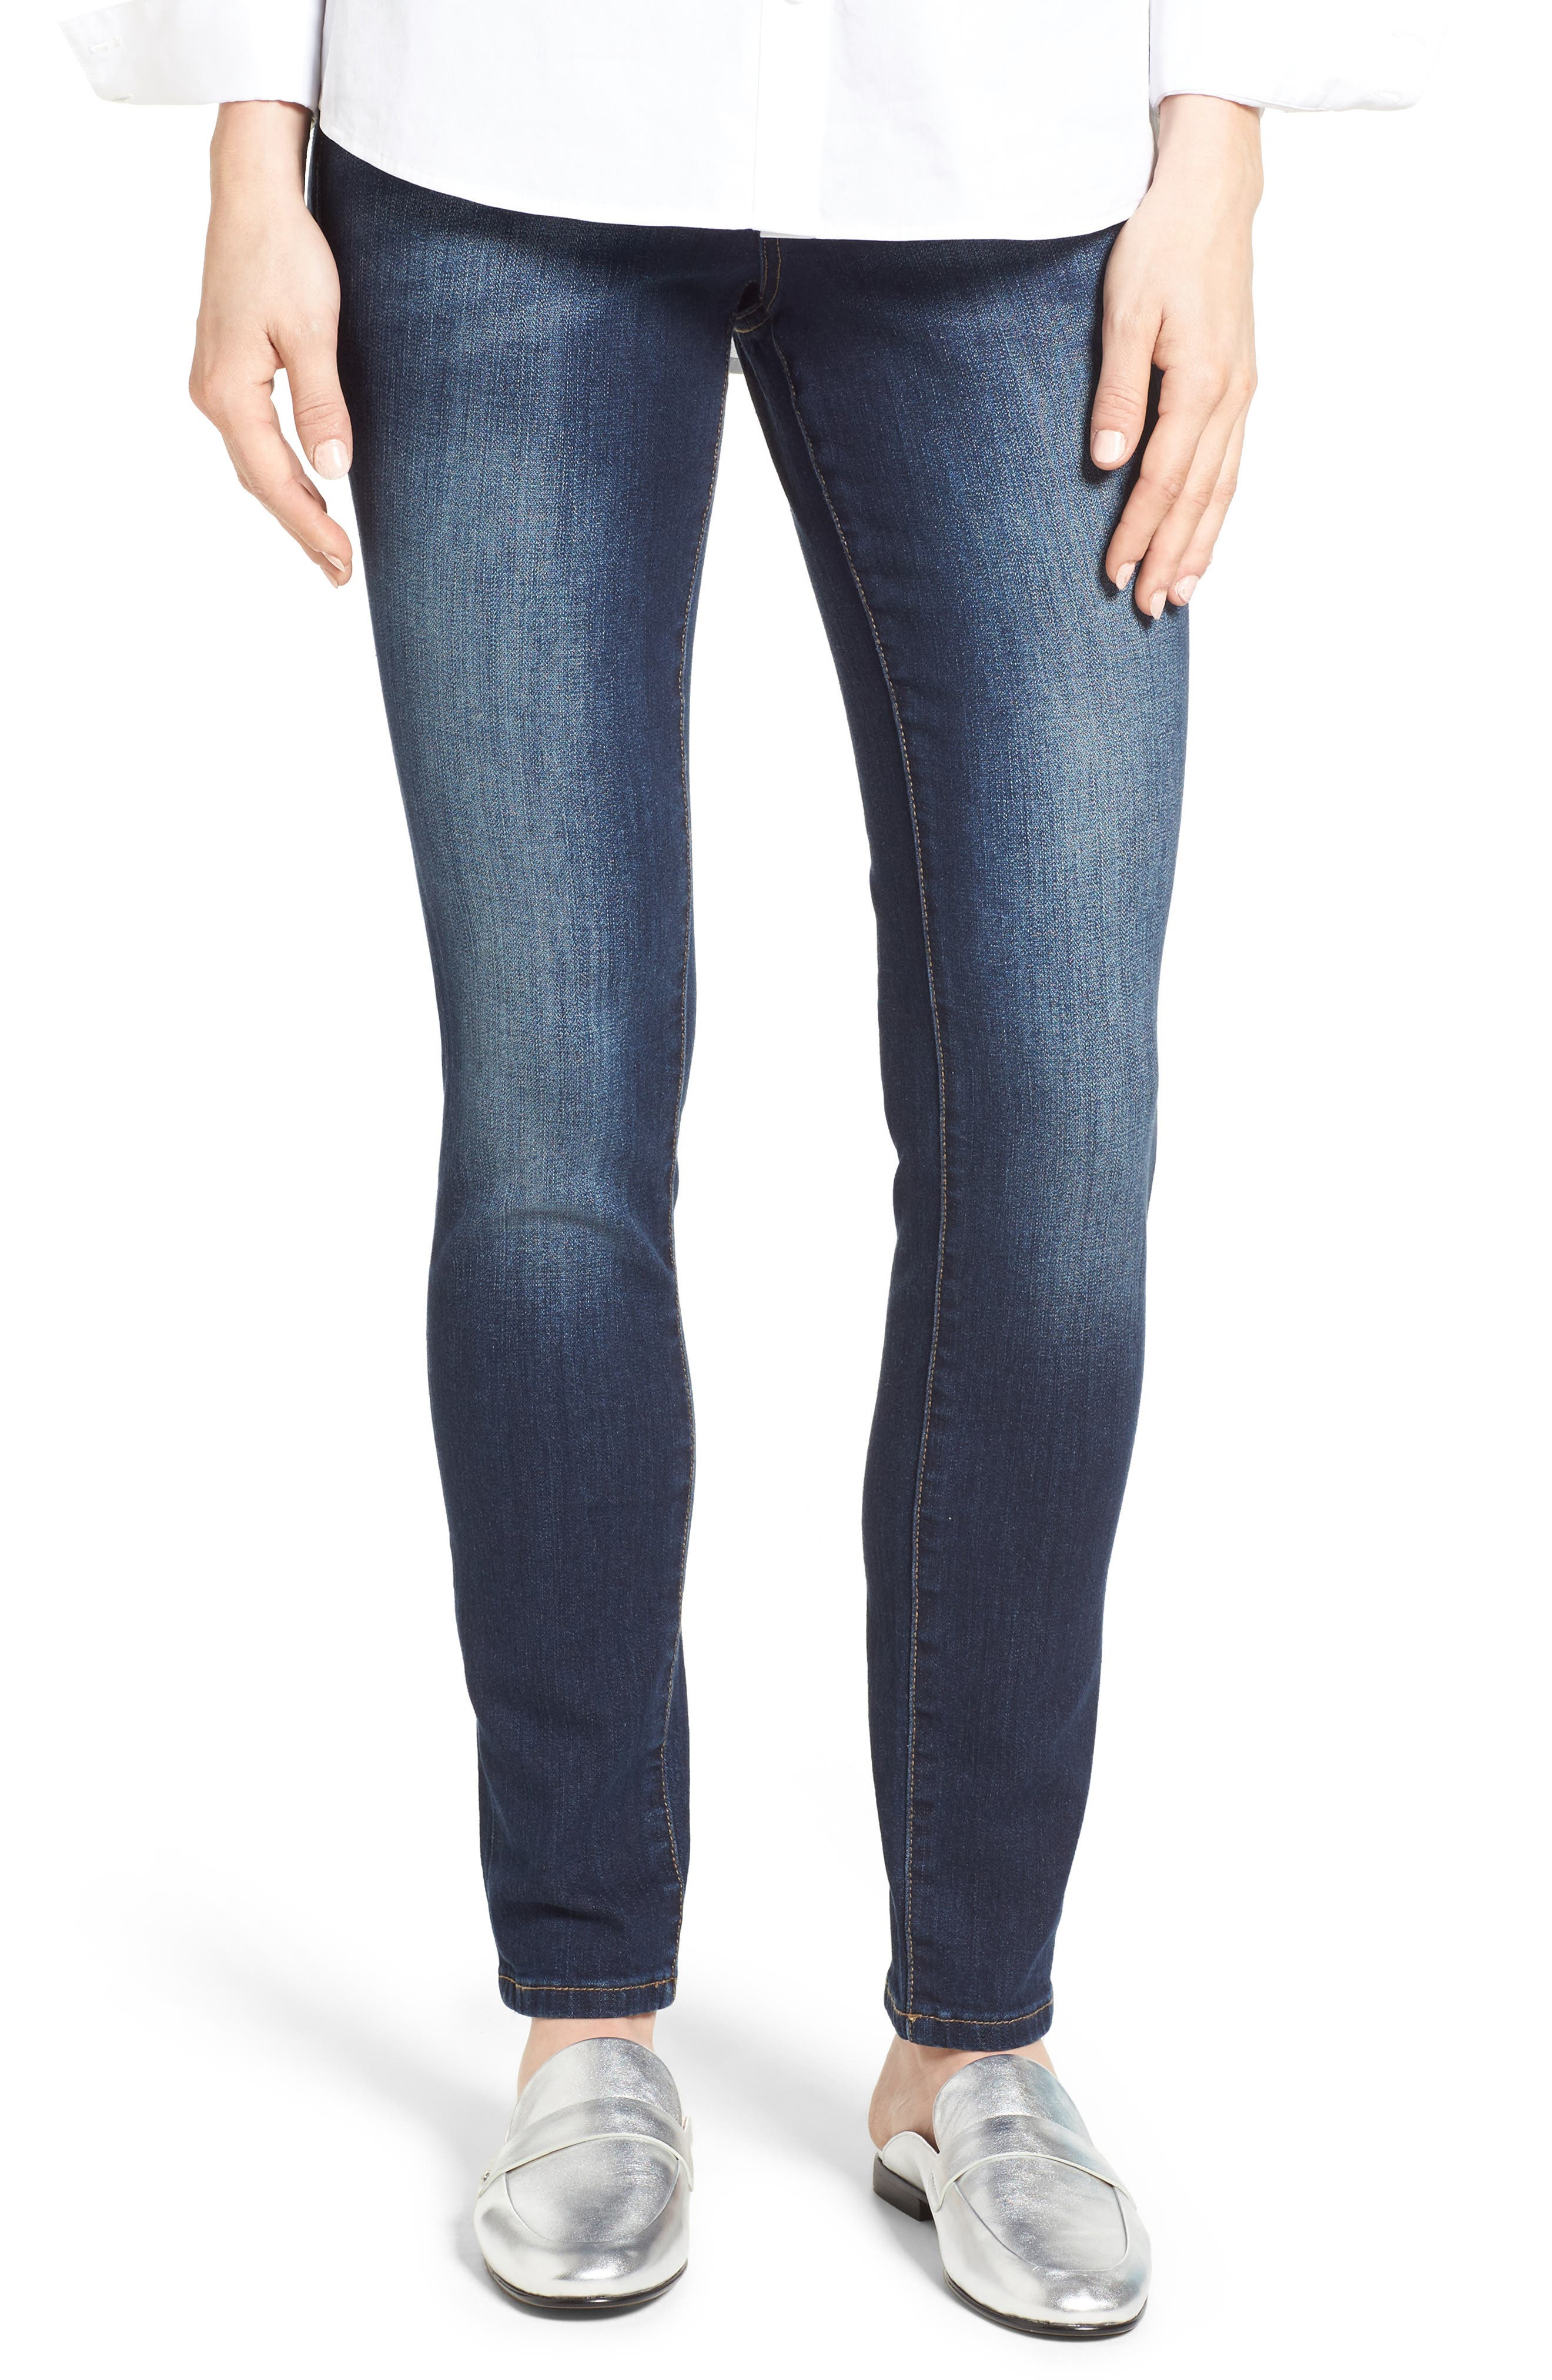 Alternate Image 1 Selected - Jag Nora Stretch Cotton Skinny Jeans (Medium Indigo)